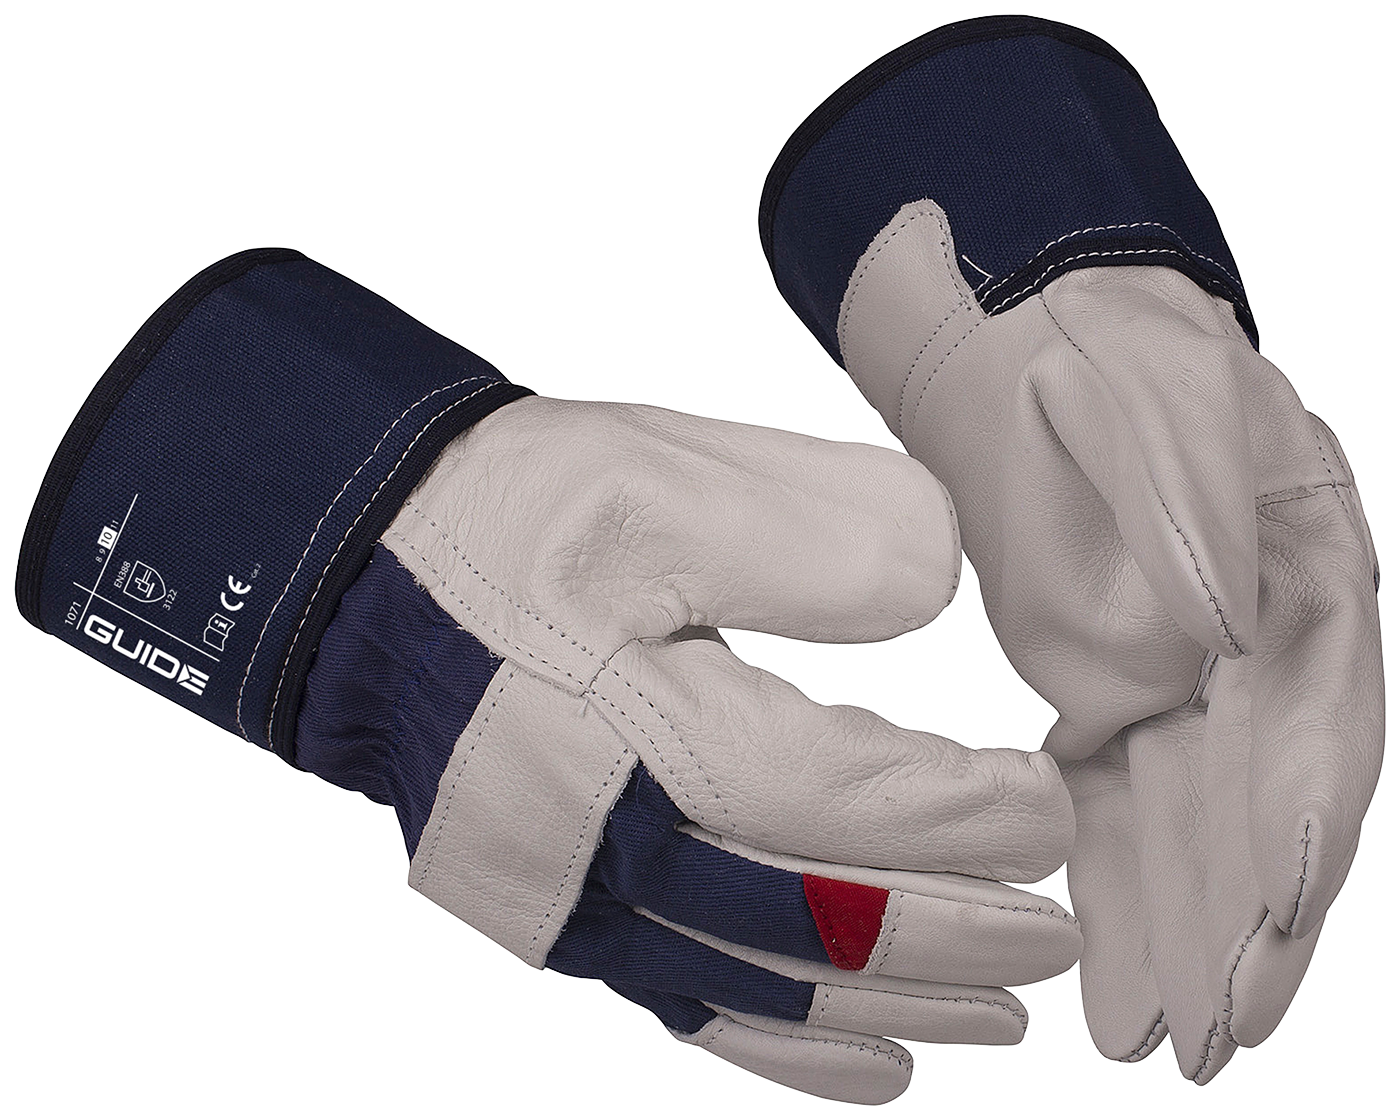 Heavyweight Working Glove GUIDE 1071